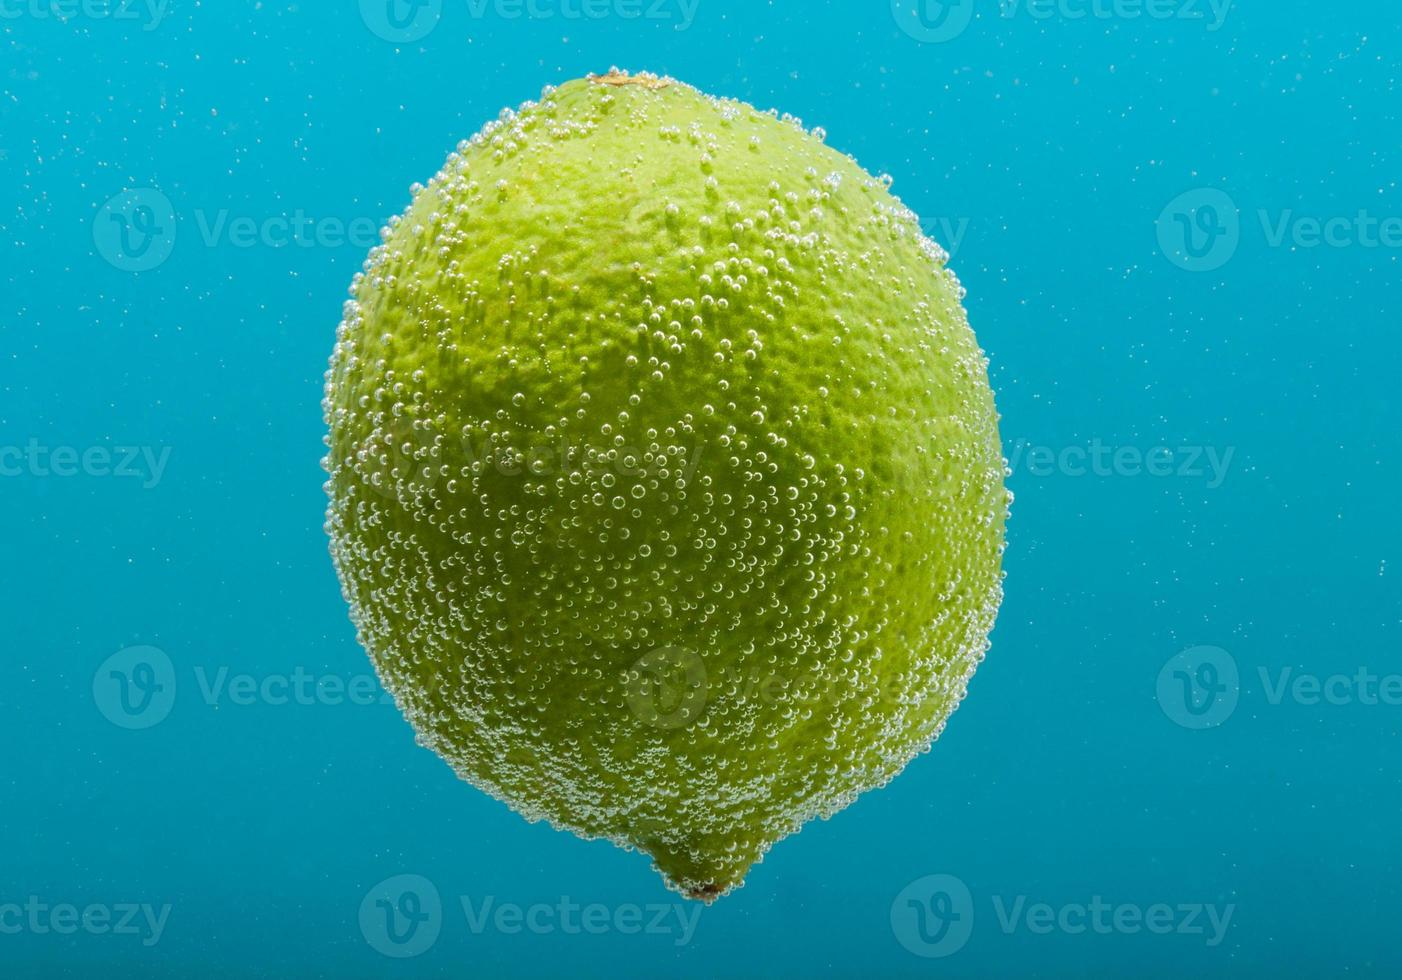 Lime in water with bubbles photo